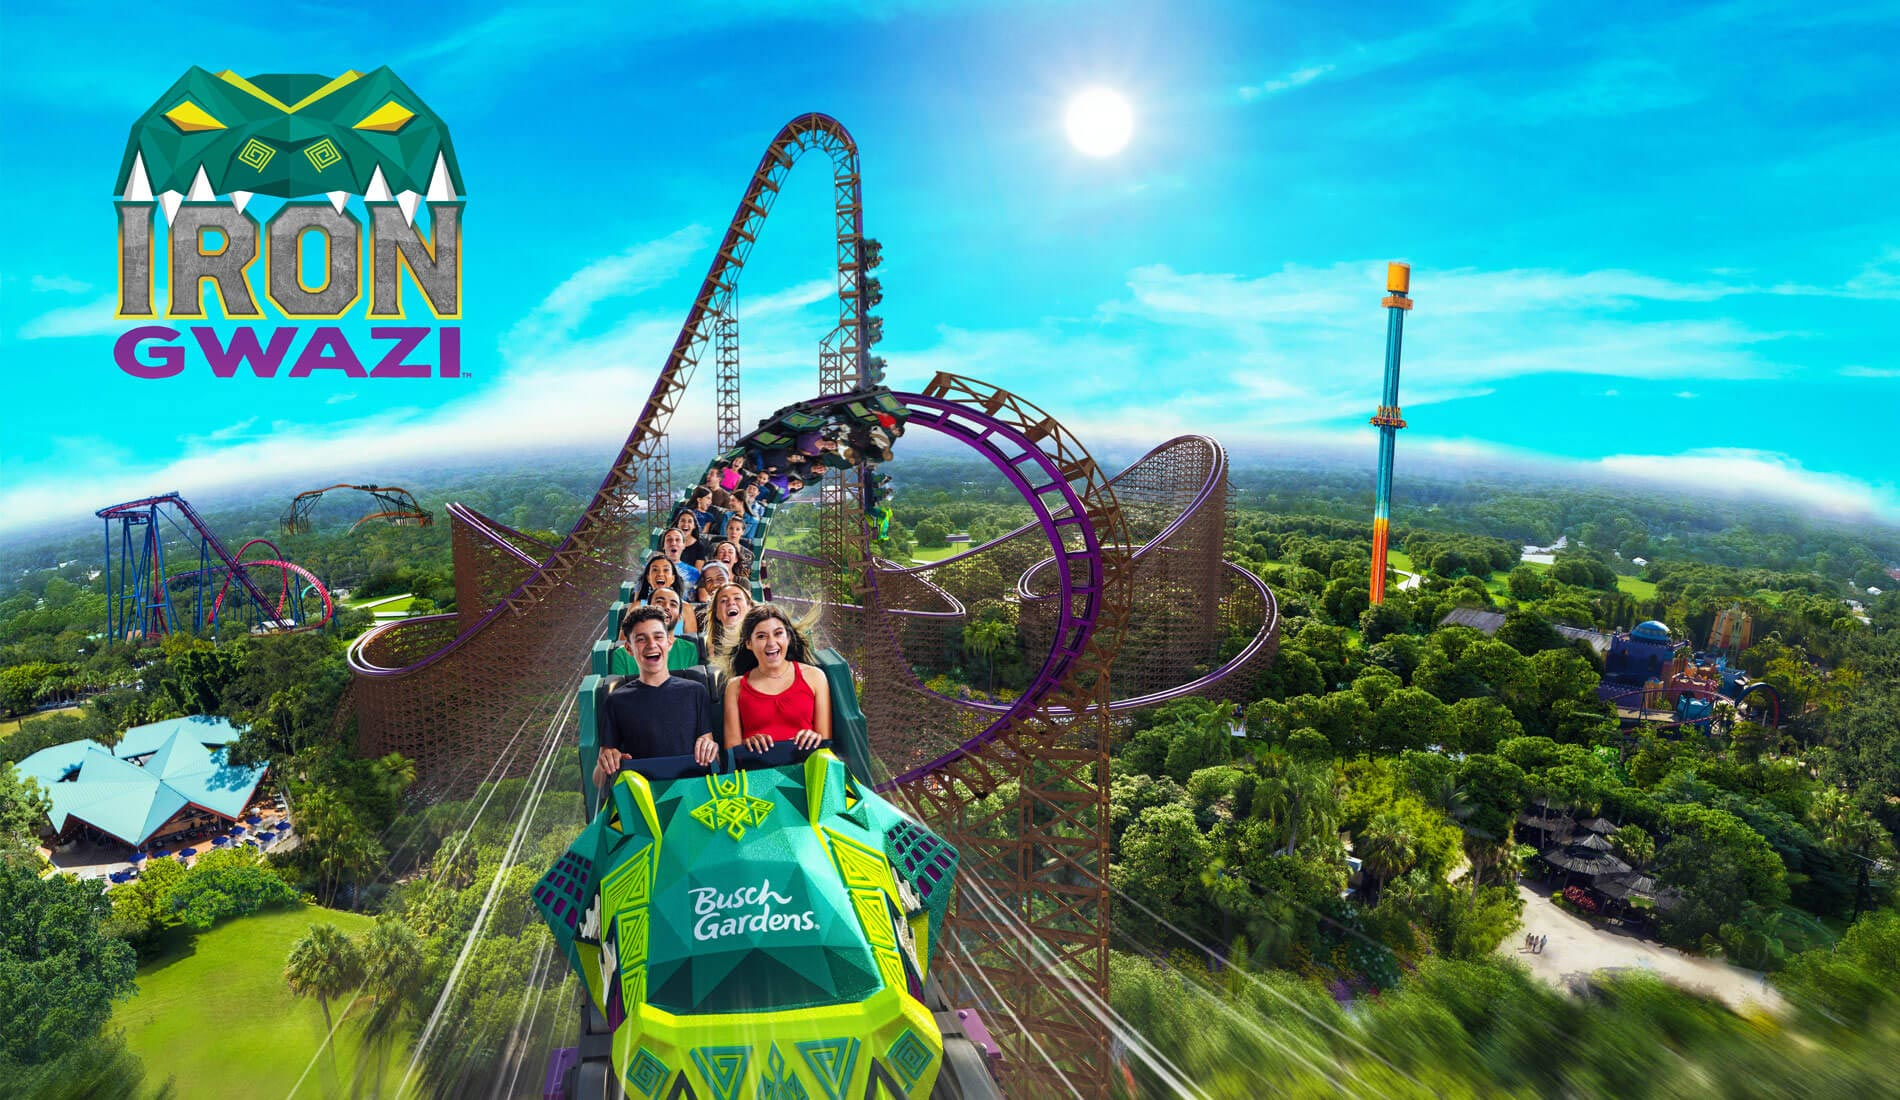 Iron Gwazi, America's Tallest and the World's Fastest and Steeps Hybrid Coaster is coming to Busch Gardens Tampa Bay in Spring 2020.